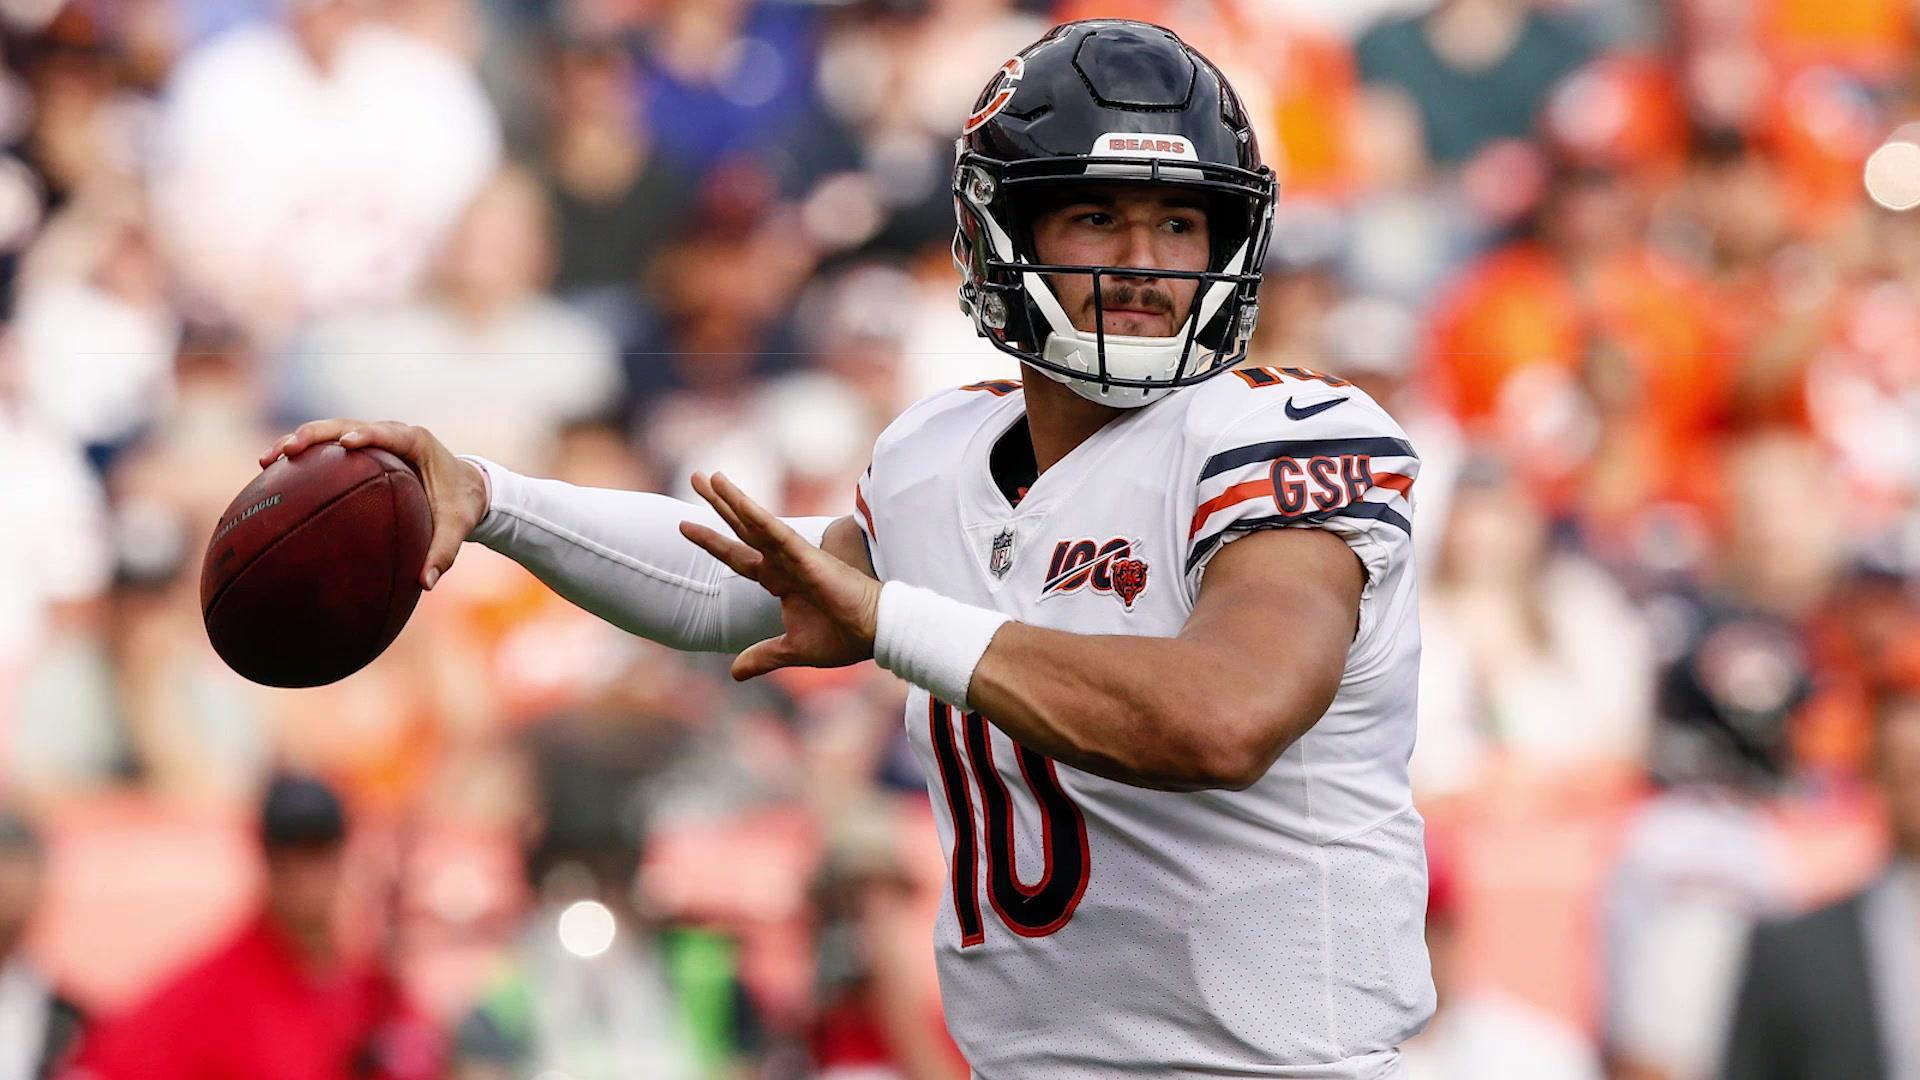 Bears grades: RBs and O-Line pass, while Mitch Trubisky struggles